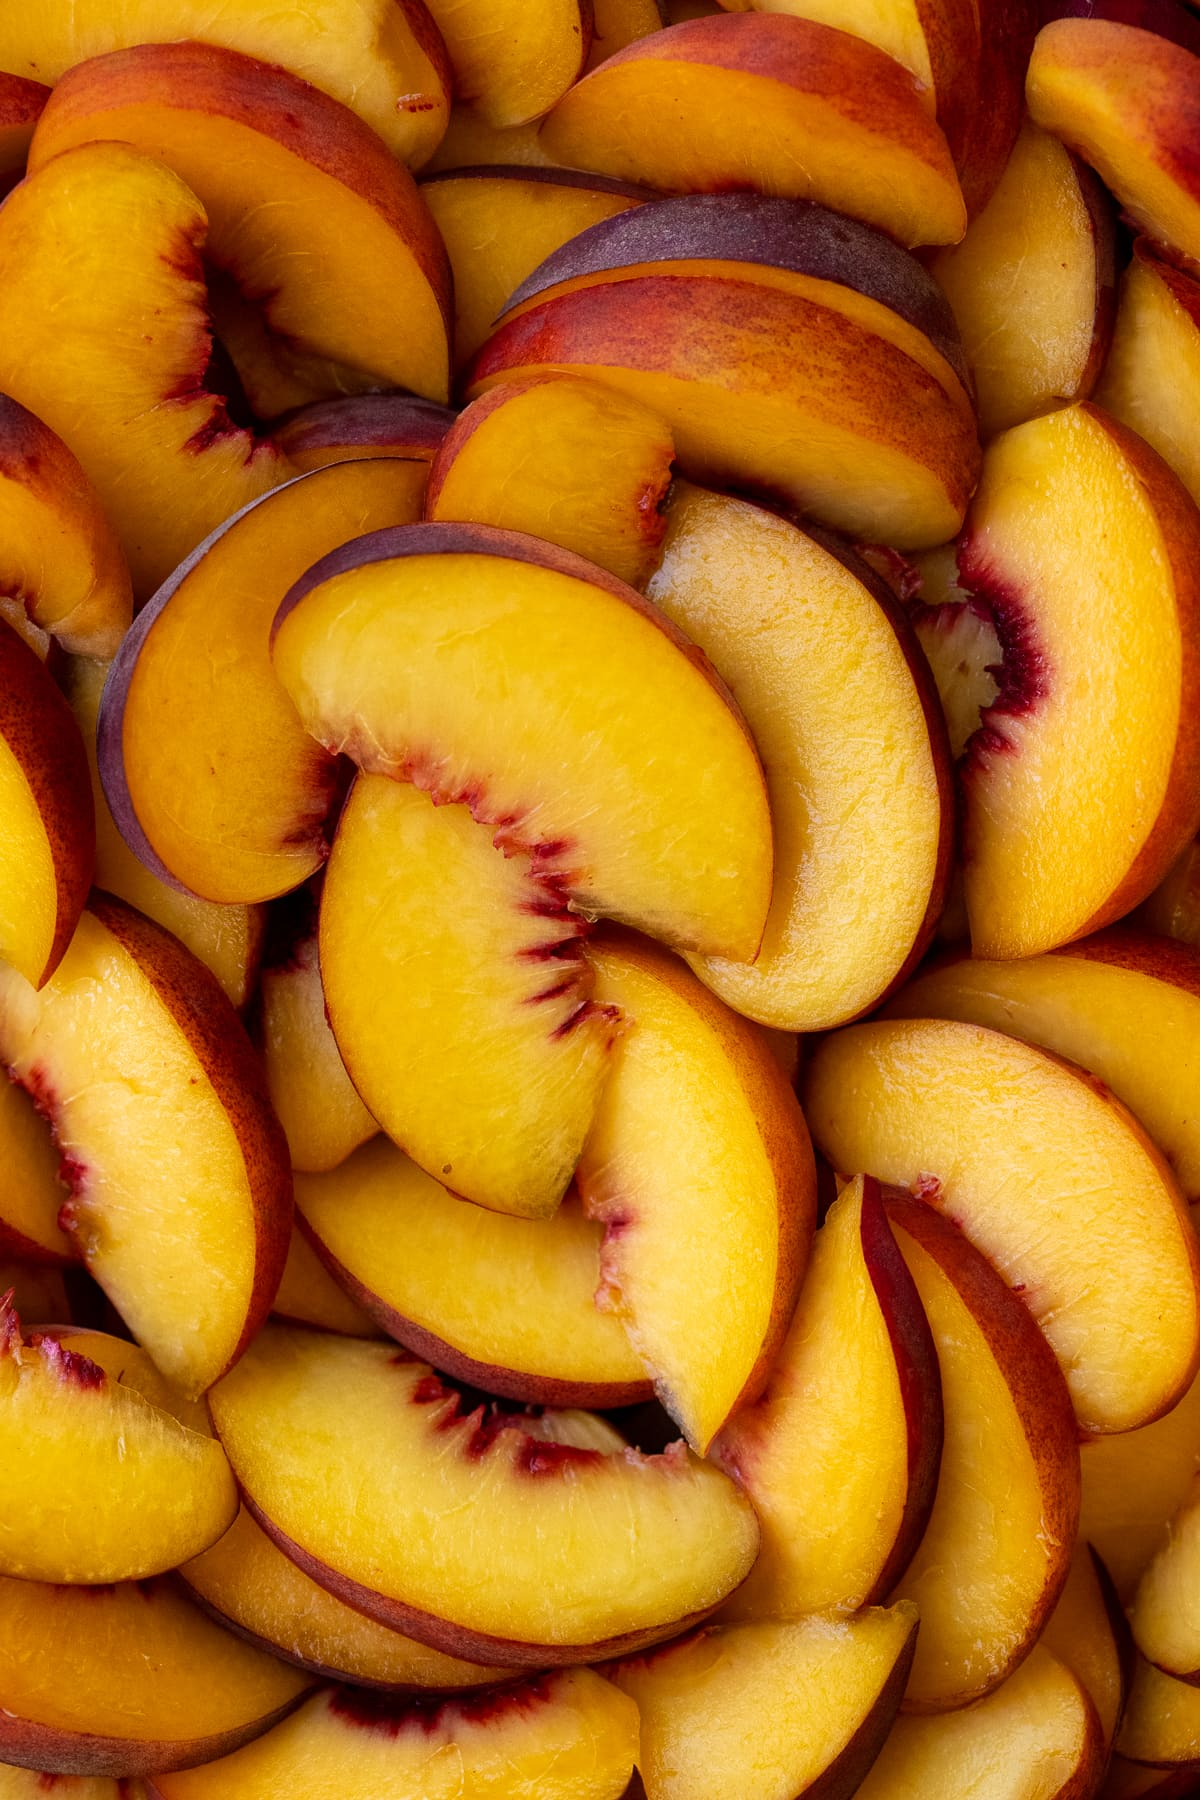 Overhead close up of peach slices.